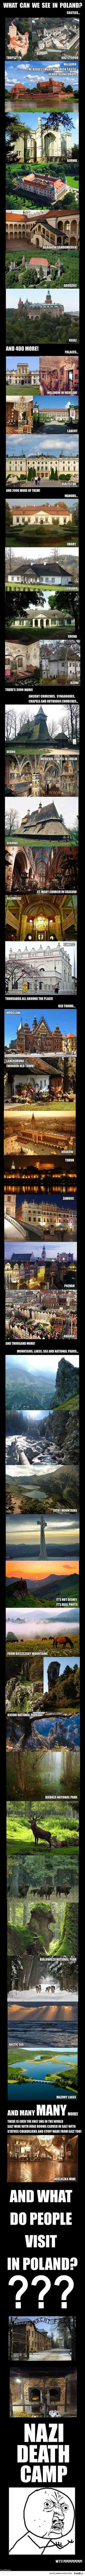 What Is There To See in Poland? And What Do People Visit?Yes, A Nazi Death Camp (. Visit Poland, Poland Travel, Central Europe, Krakow, Adventure Is Out There, Warsaw, Eastern Europe, Vacation Spots, Places To See